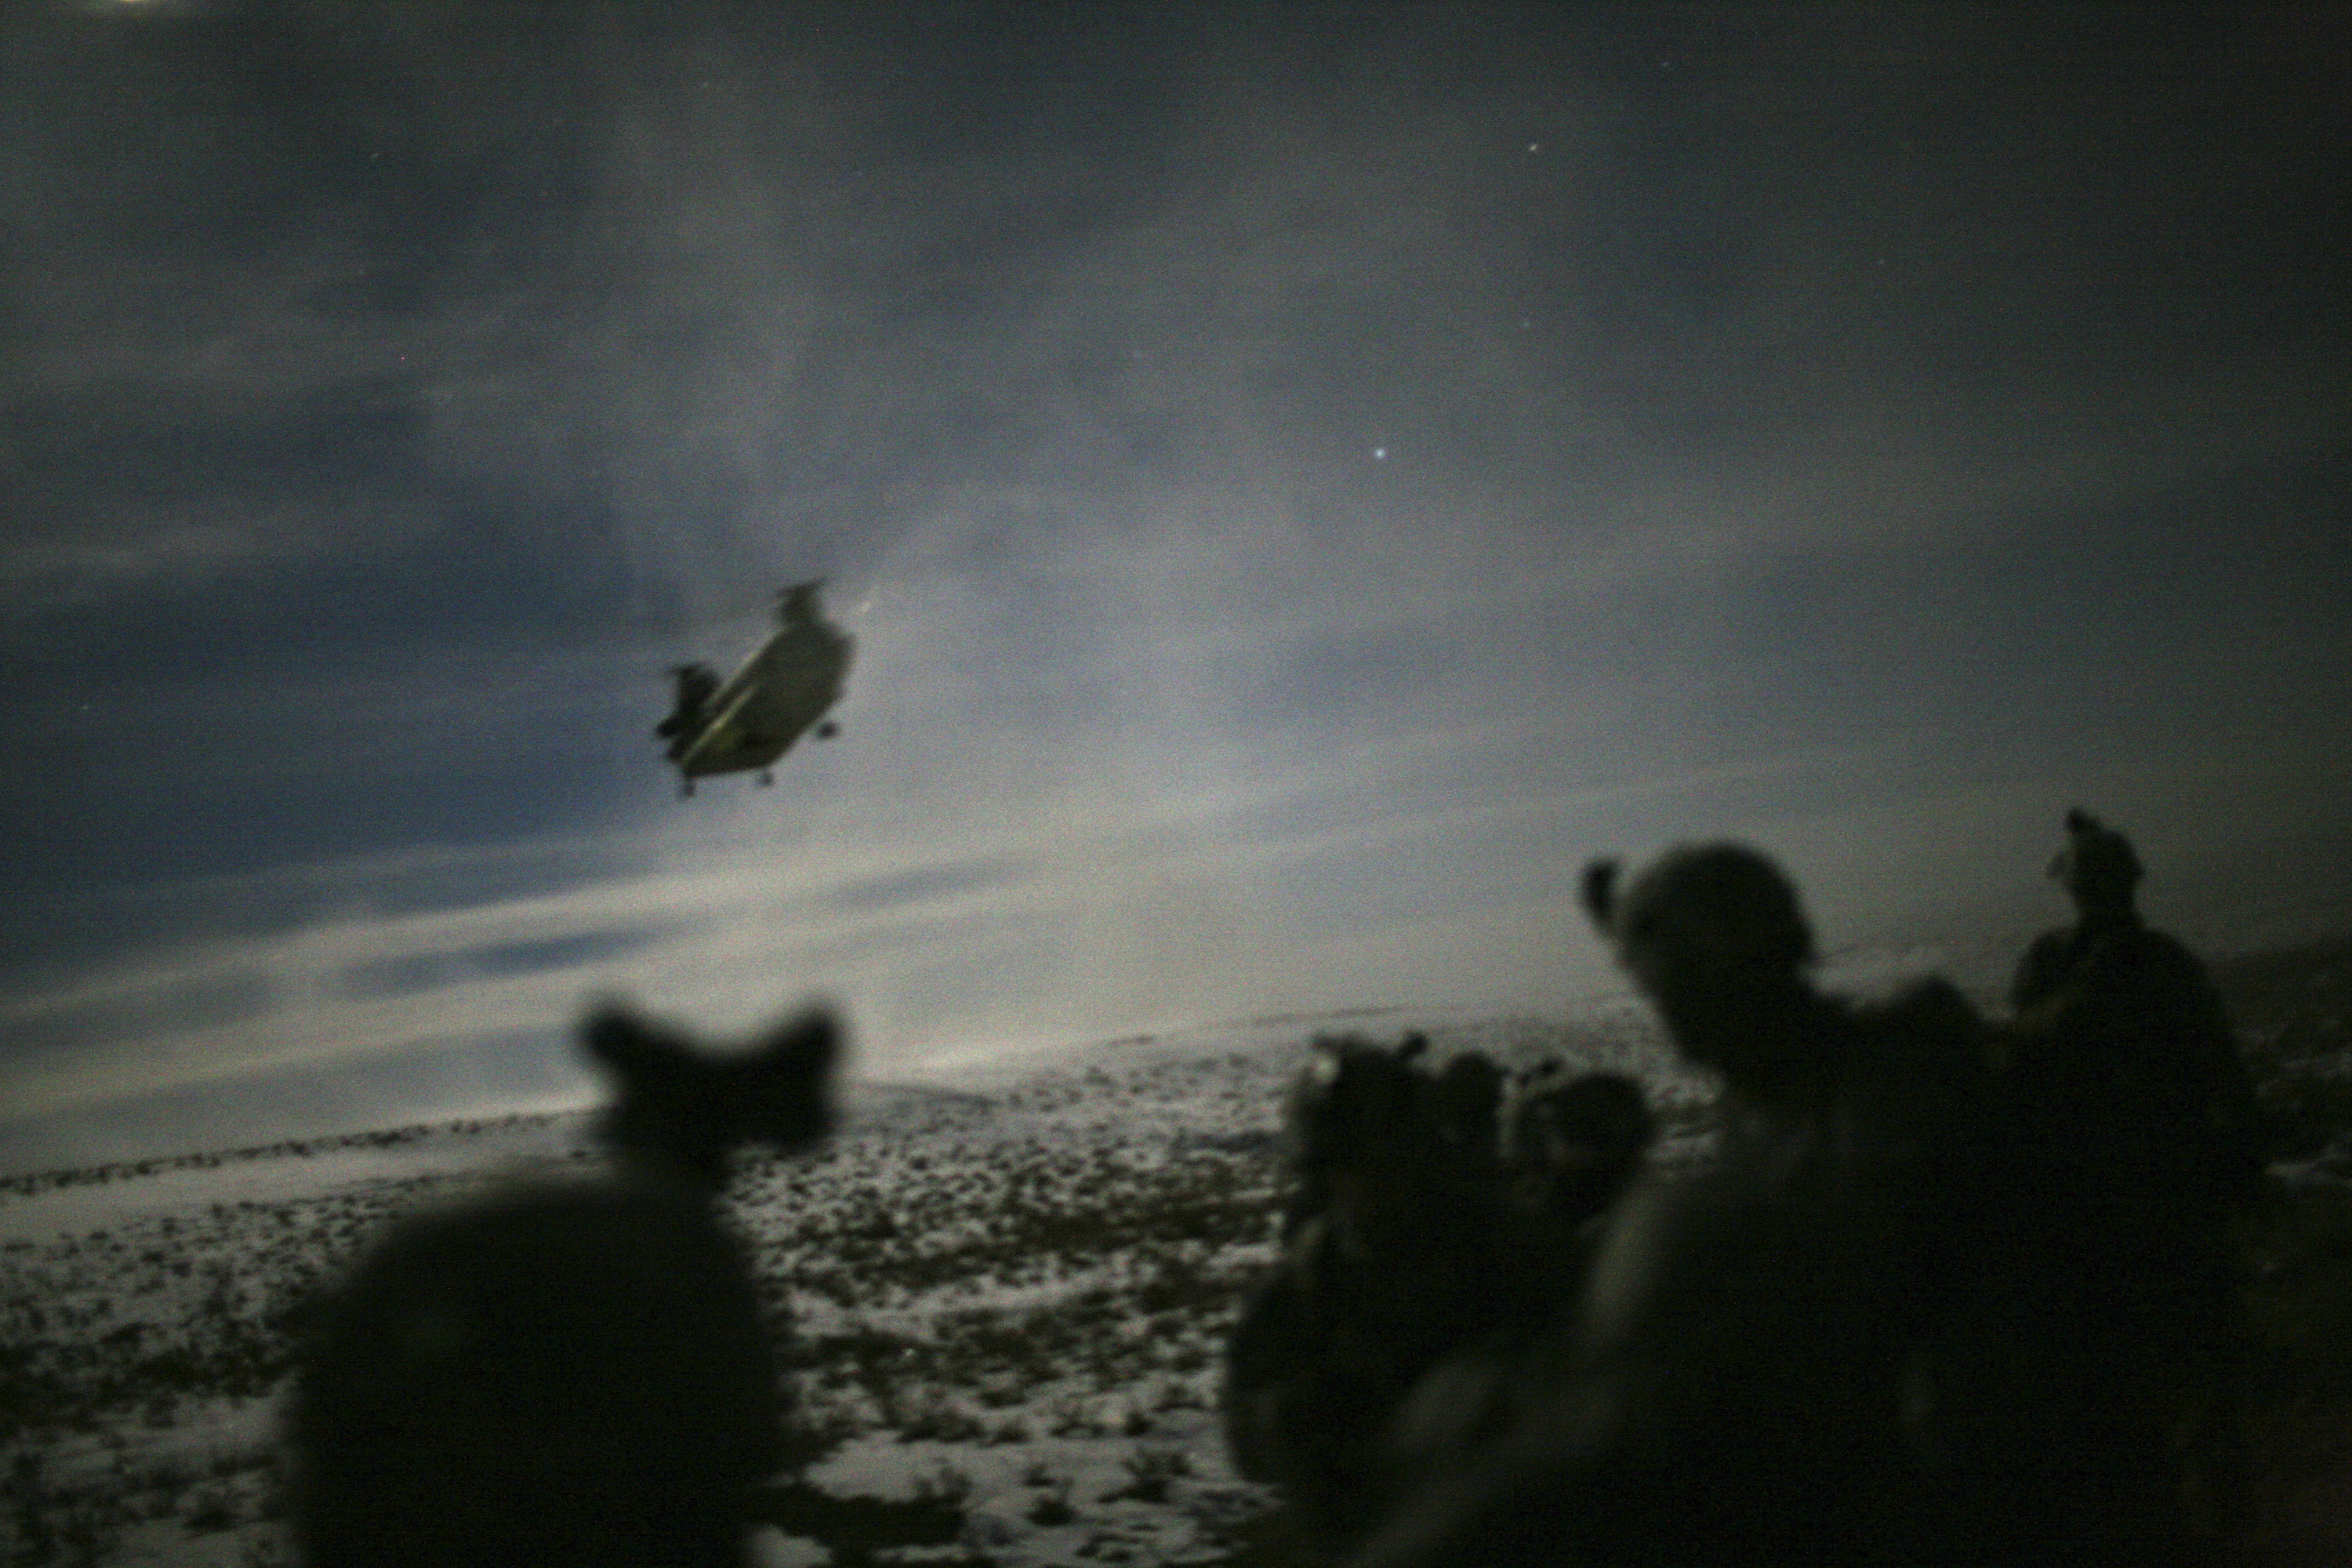 A Chinook helicopter lands to pick up U.S. soldiers of the 101st Airborne Division following a night raid in Yahya Khel, Paktika province February 21, 2011. The night raid is a controversial tactic that has been stepped up dramatically since General David Petraeus took over running the Afghan war last year, despite strong opposition led by President Hamid Karzai. Petraeus says the pressure on suspected insurgents and their networks has brought a new dynamic to a near-decade-old war. Critics argue it is fuelling violence because poor intelligence means dozens of innocent people are killed or detained. Although more than 80 percent of recent raids ended without a shot being fired, violence escalates fast when it does break out, with 600 people killed on operations in the three-month period.    To match Feature AFGHANISTAN-RAIDS/   Picture taken February 21, 2011. REUTERS/Matt Robinson (AFGHANISTAN - Tags: CIVIL UNREST MILITARY POLITICS IMAGES OF THE DAY) - GM1E72O17Q701